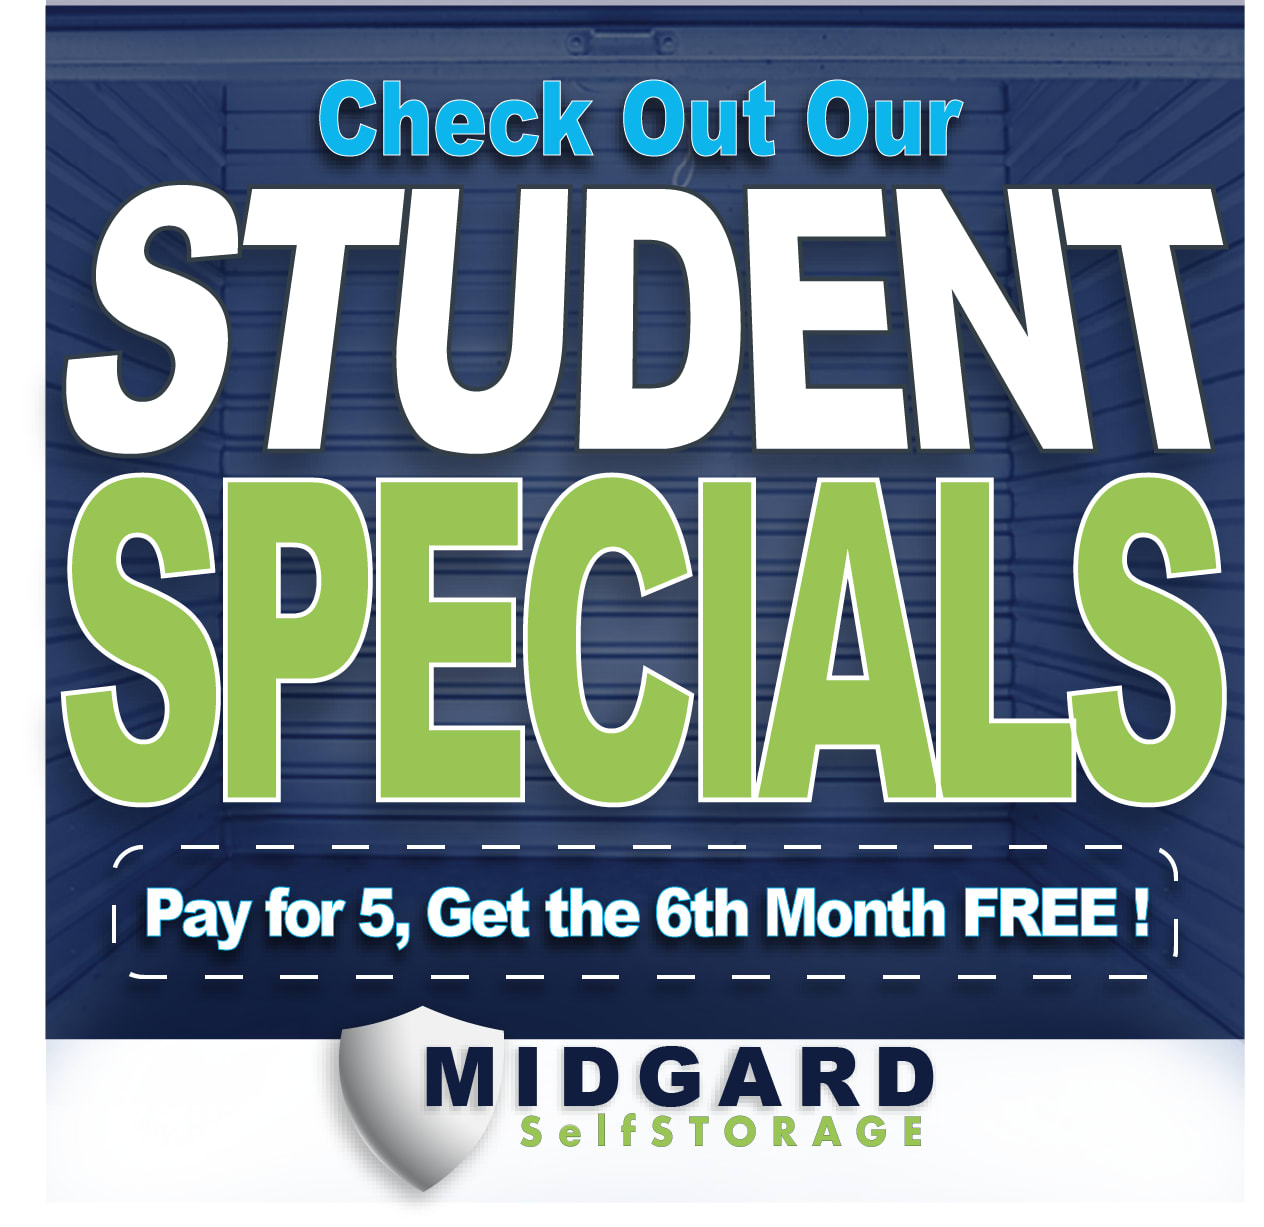 Special at Midgard Self Storage in Florence, Alabama